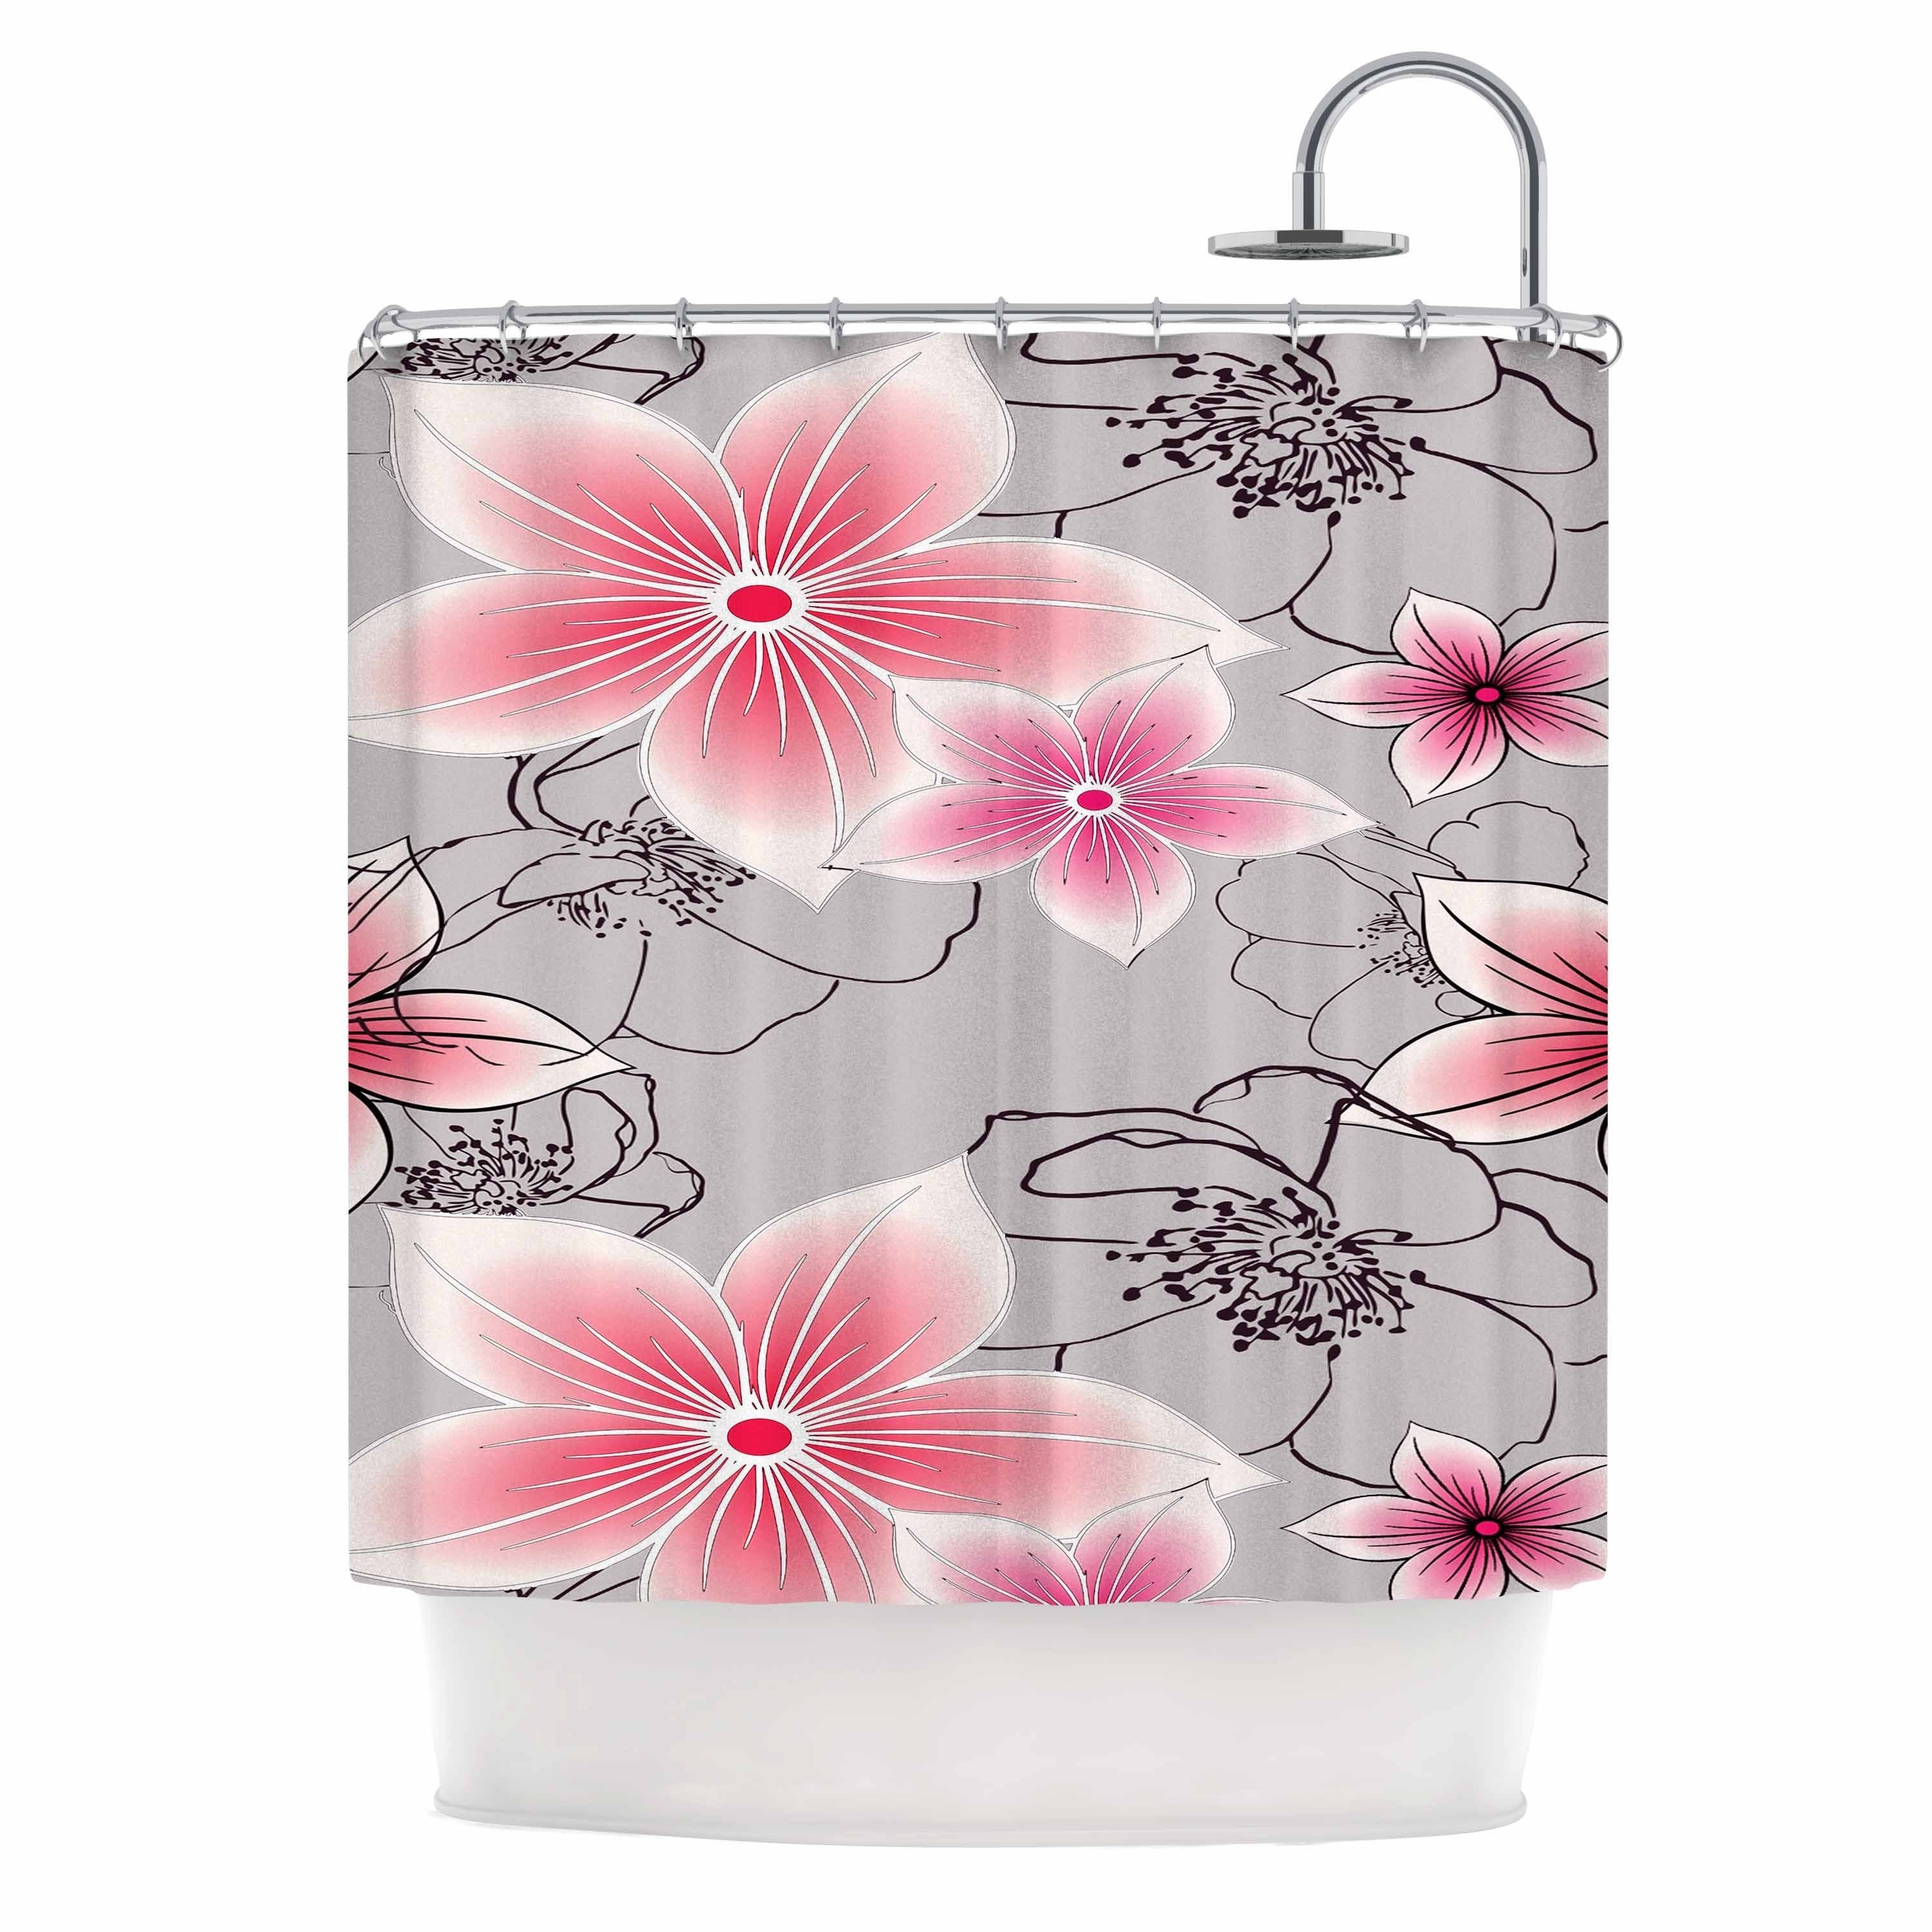 Shop KESS InHouse Alison Coxon Grey And Pink Floral Shower Curtain 69x70